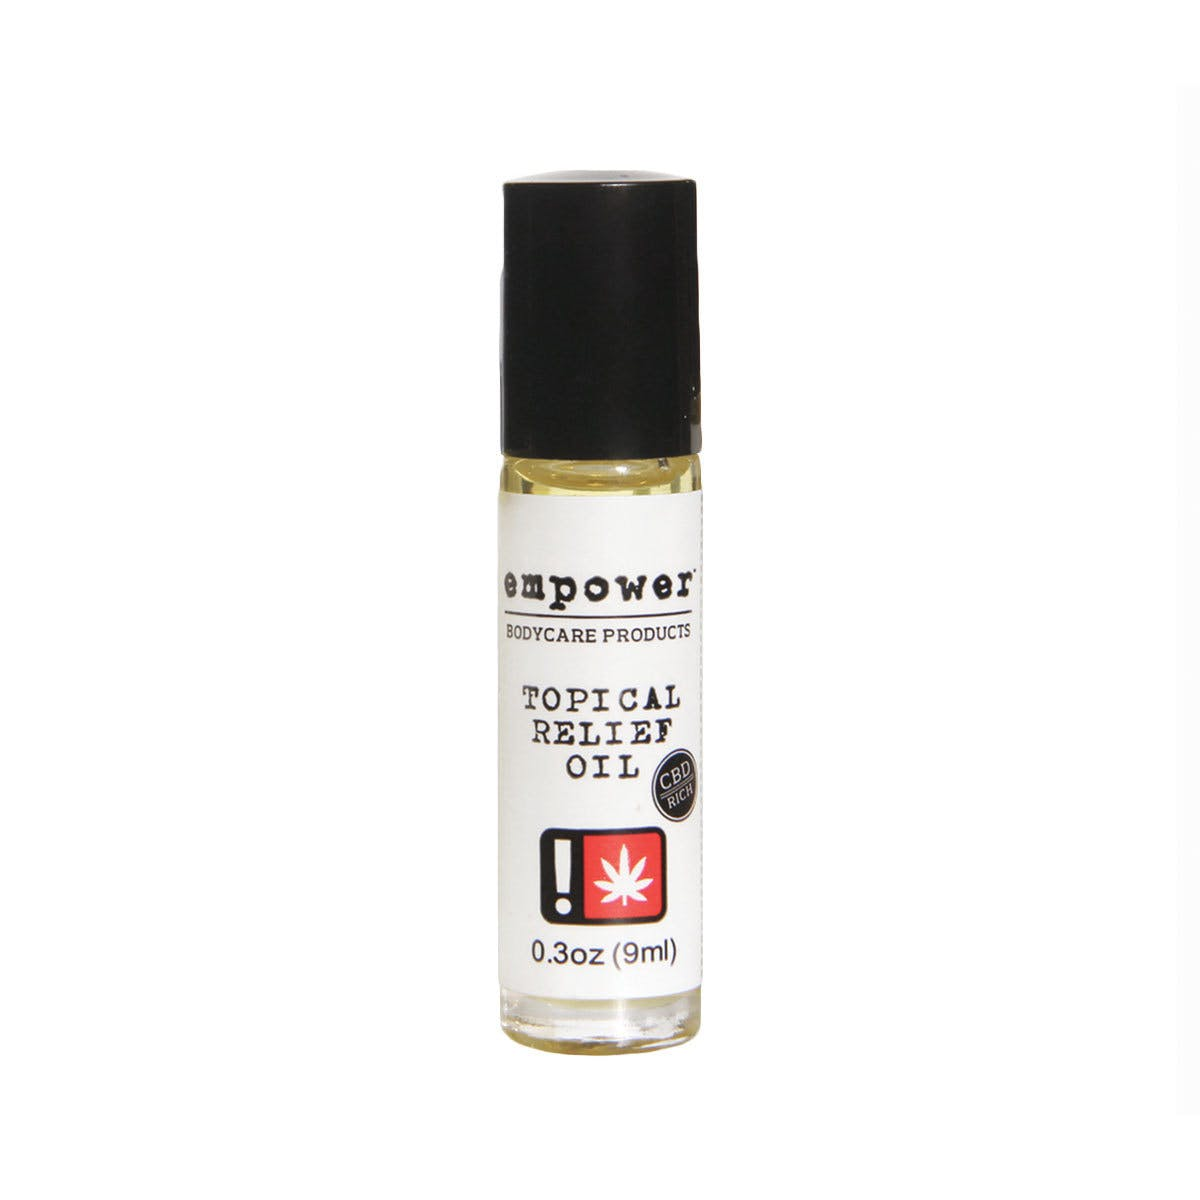 marijuana-dispensaries-kush-dispensary-of-oregon-in-keizer-empowerar-topical-relief-oil-white-label-9ml